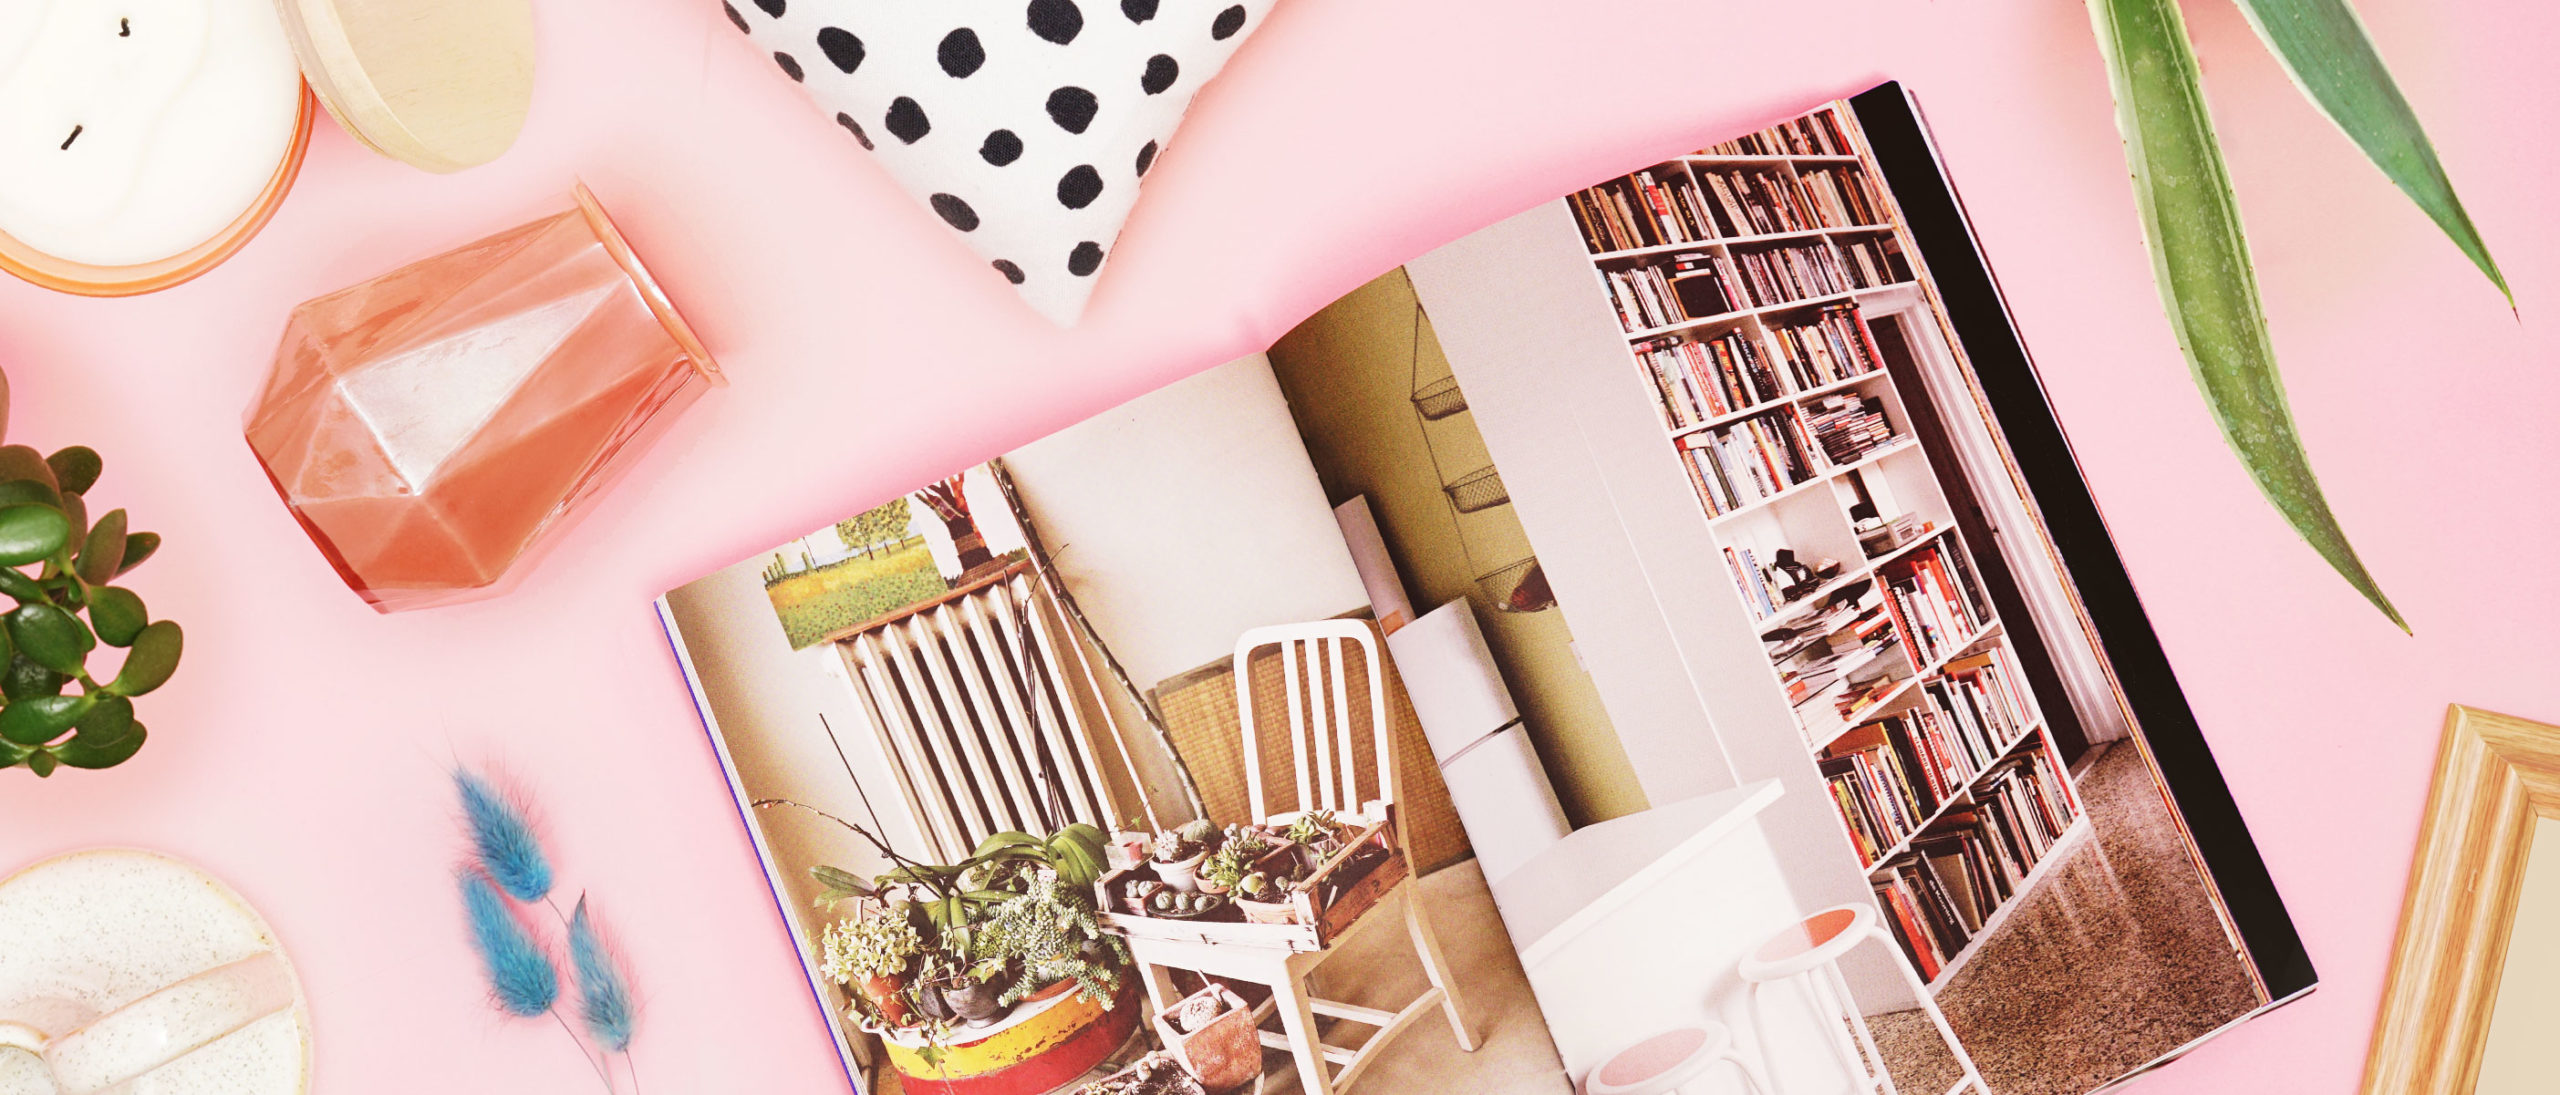 6 Places to Find Decor Inspiration for Your Home